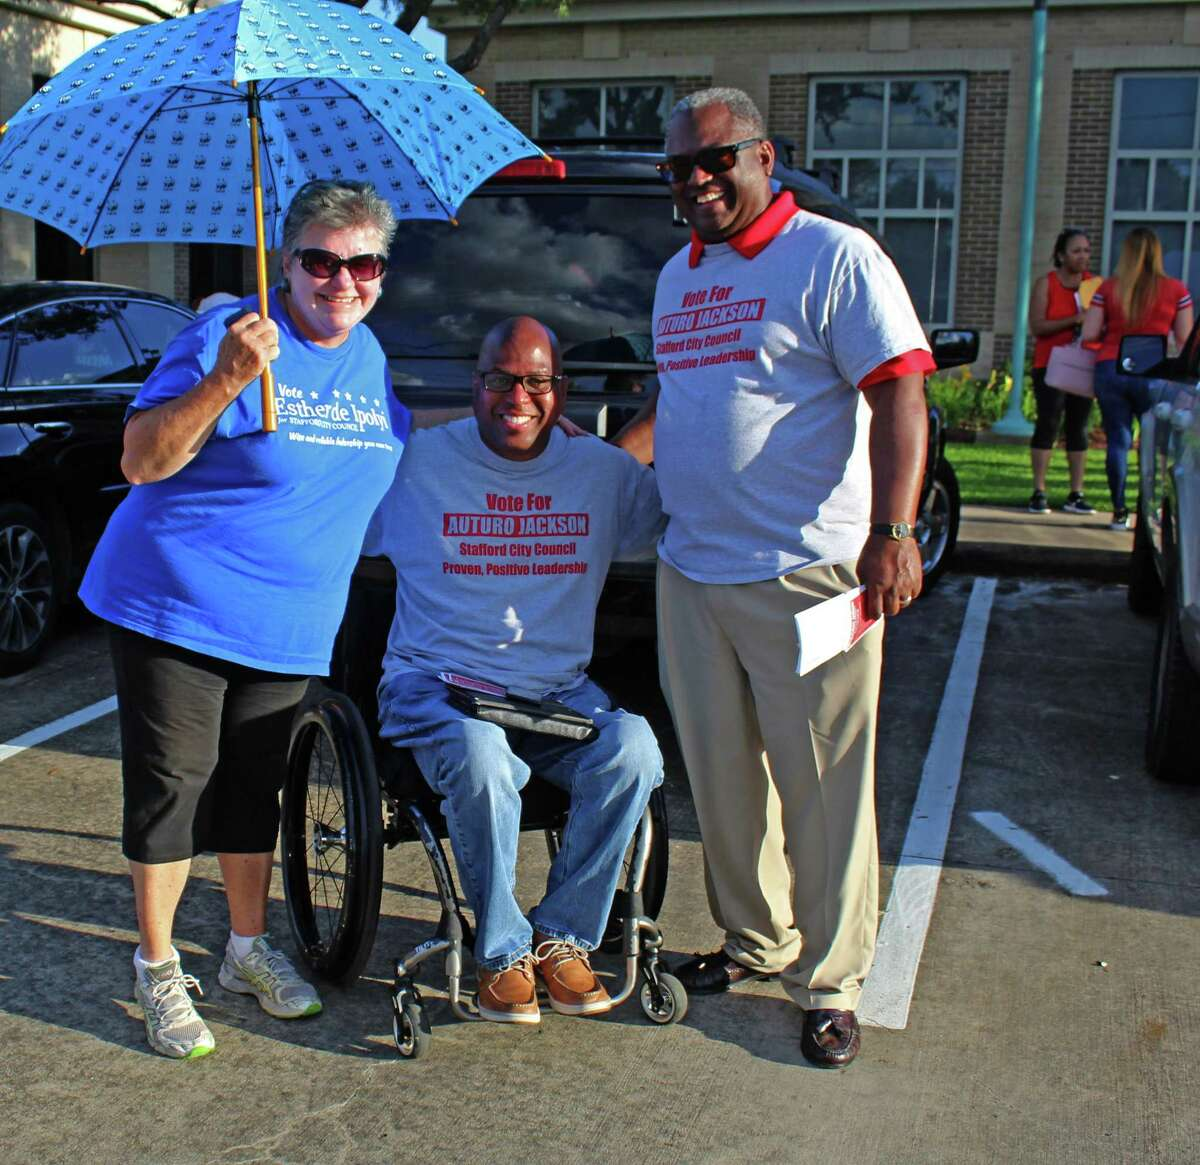 Candidates and suporters visit outside Stafford City Hall on Election Day, May 4. Pictured from left: City Council candidates Esther de Ipolyi and Arturo Jackson, supporter Michael Jackson